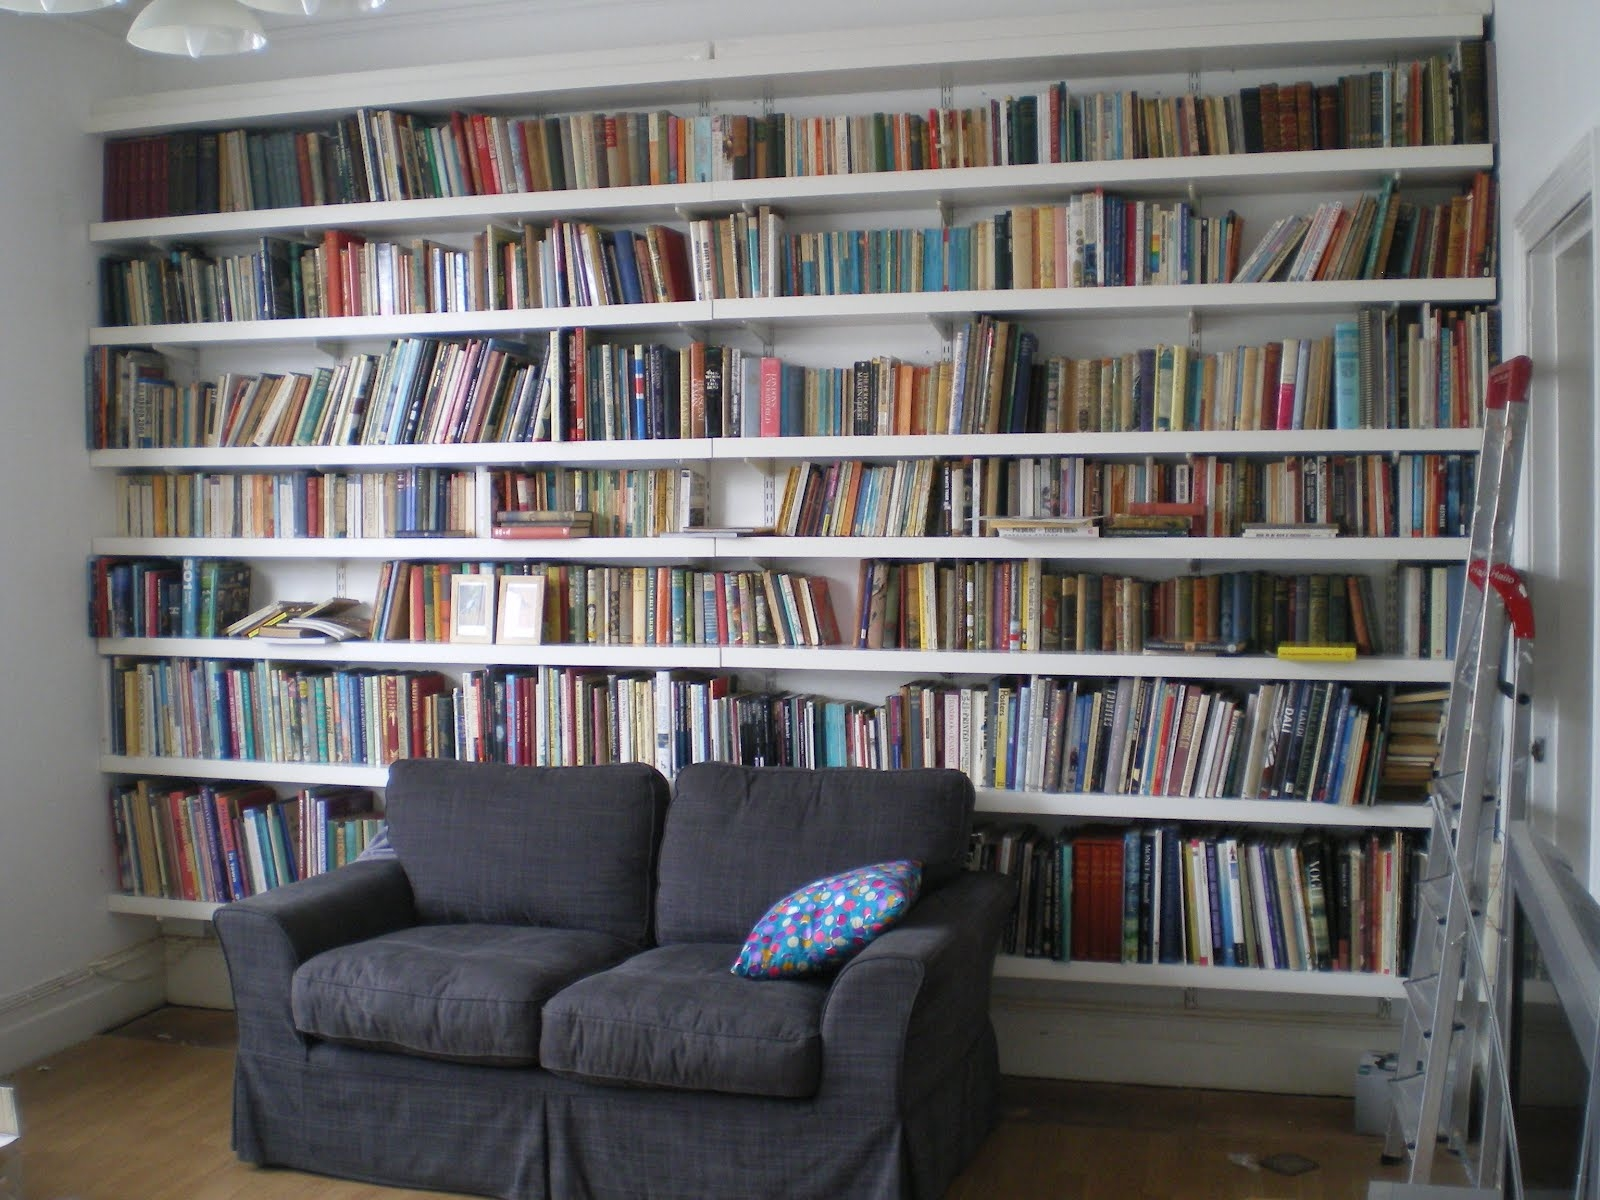 Wall Book Racks 15 Inspirations Of Book Shelving Systems